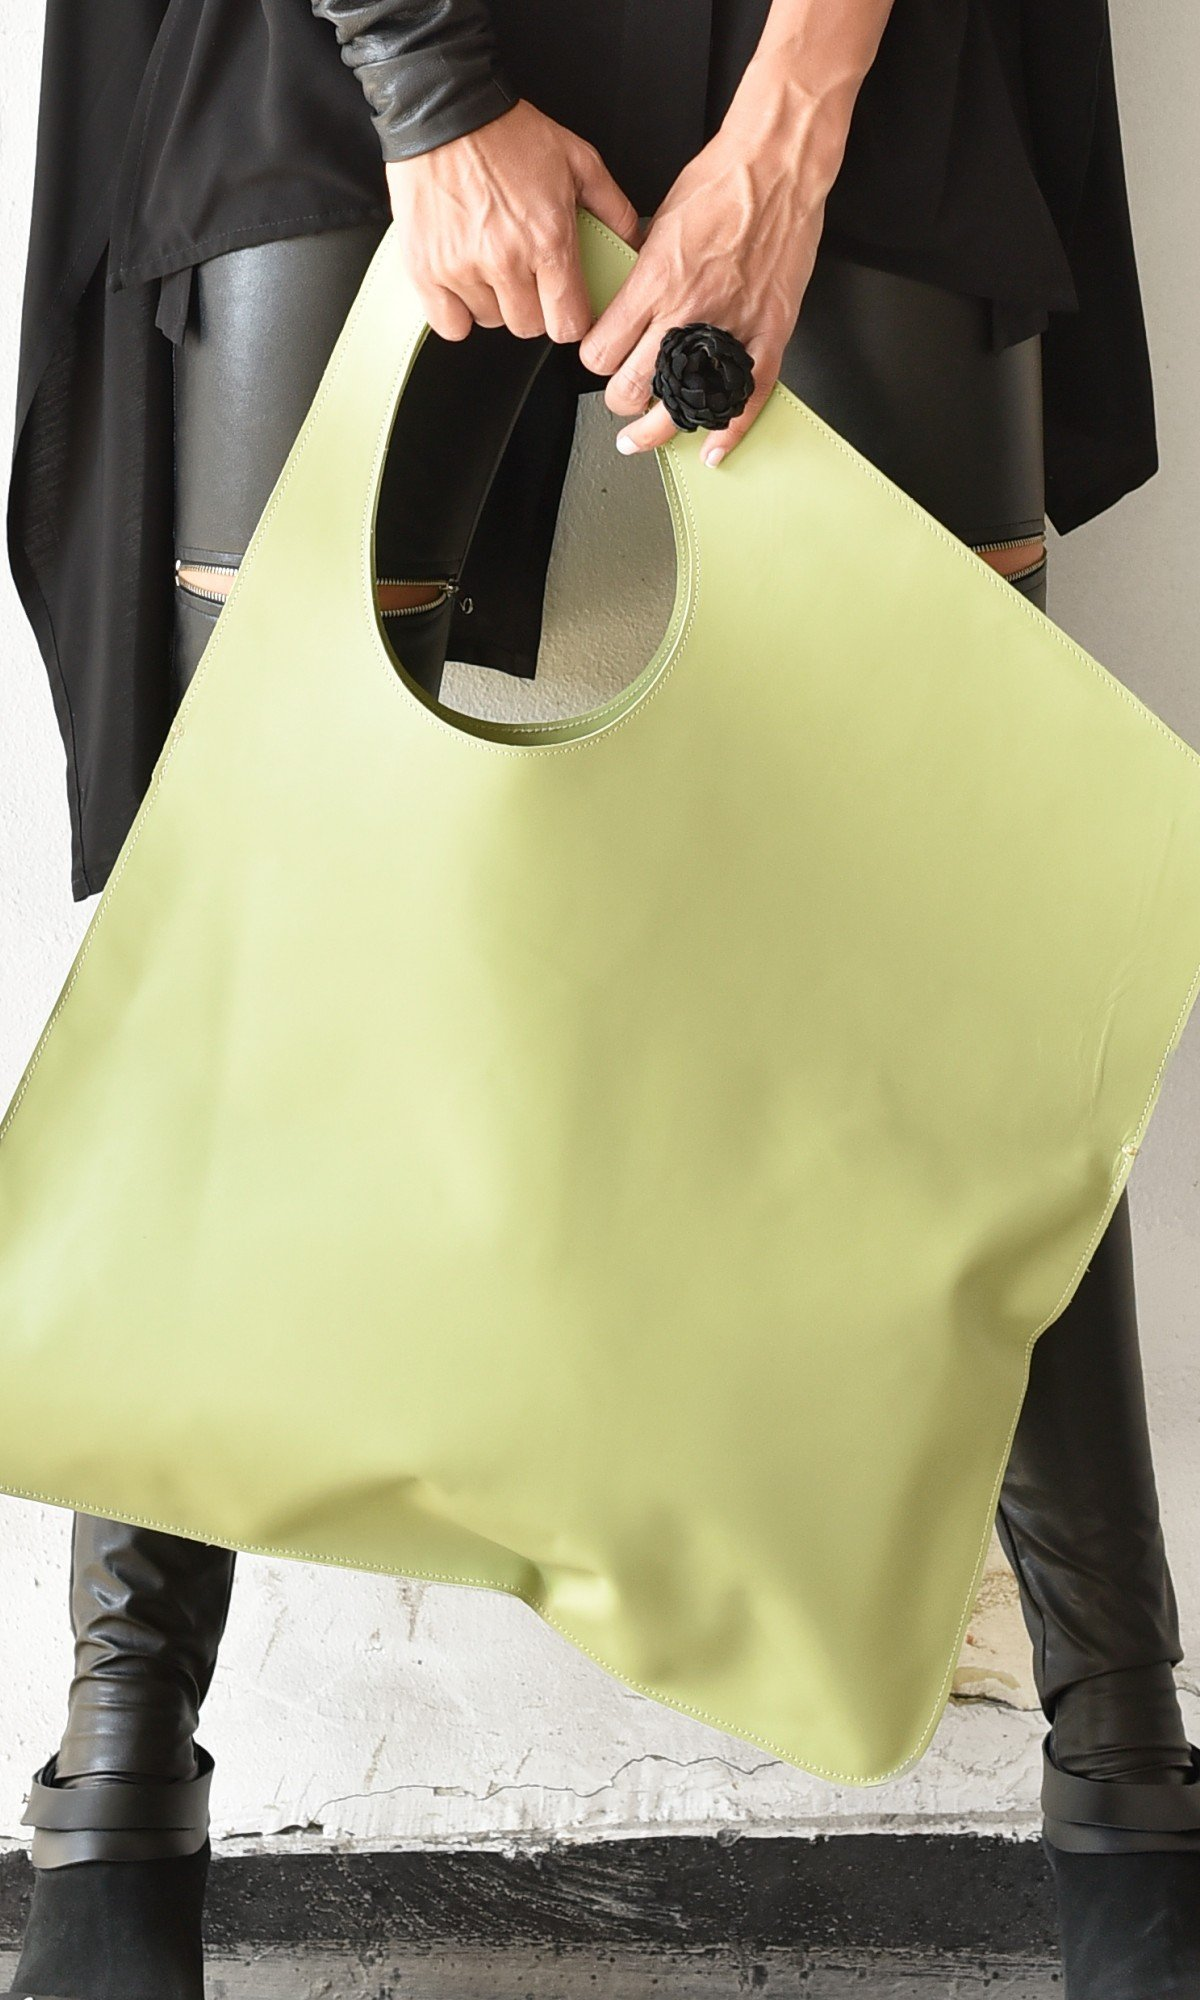 Large Extravagant Mint Green genuine leather Bag A14176